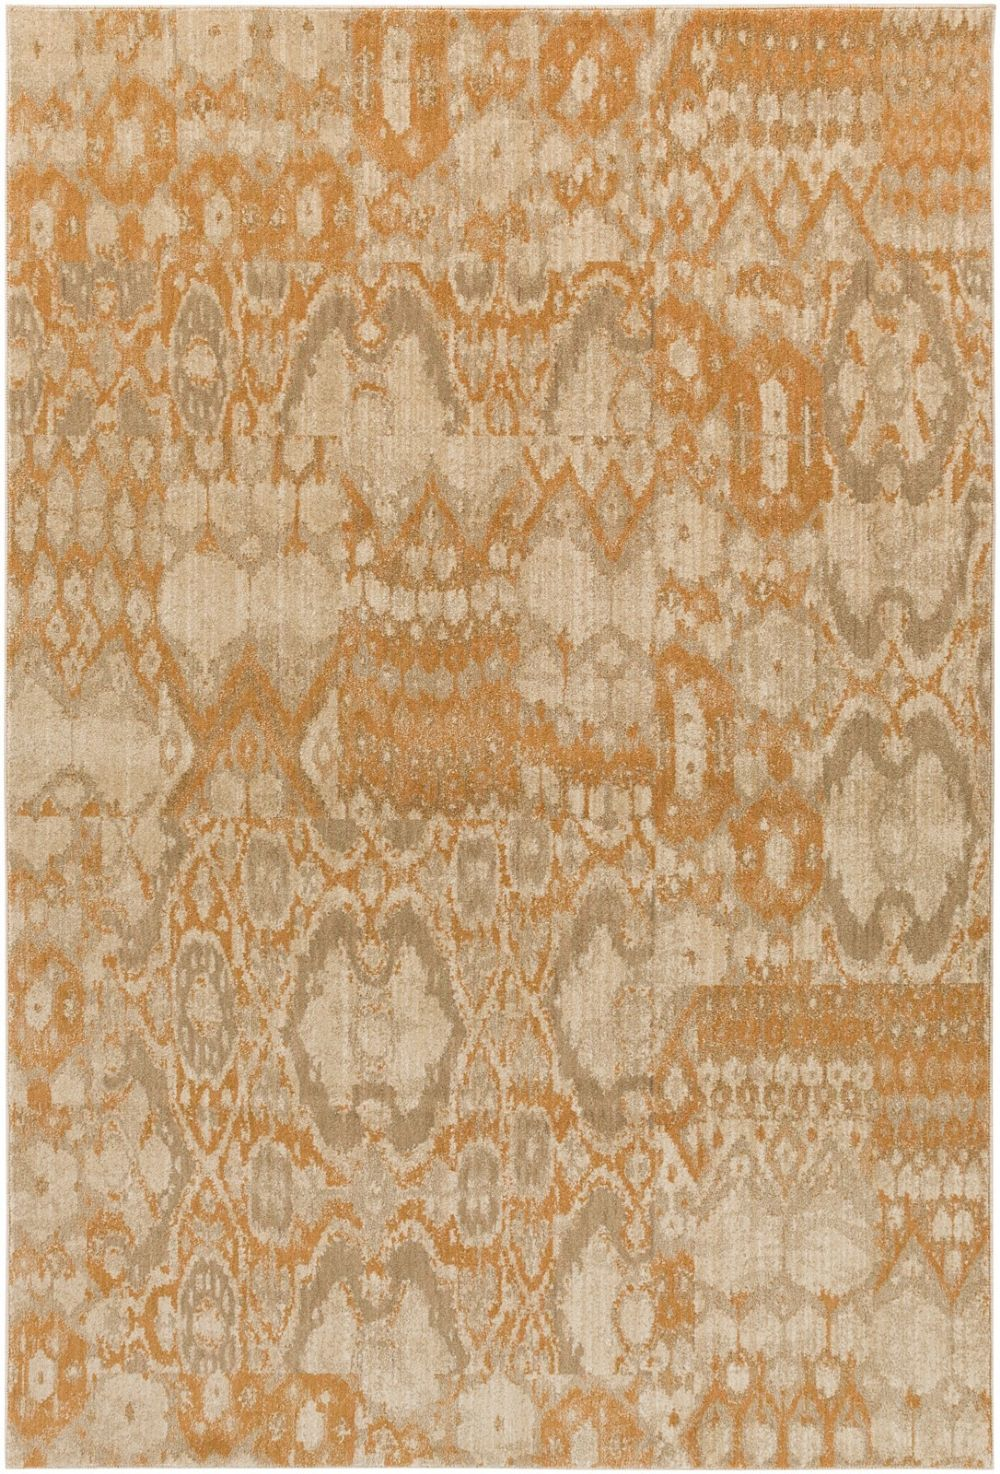 surya arabesque transitional area rug collection